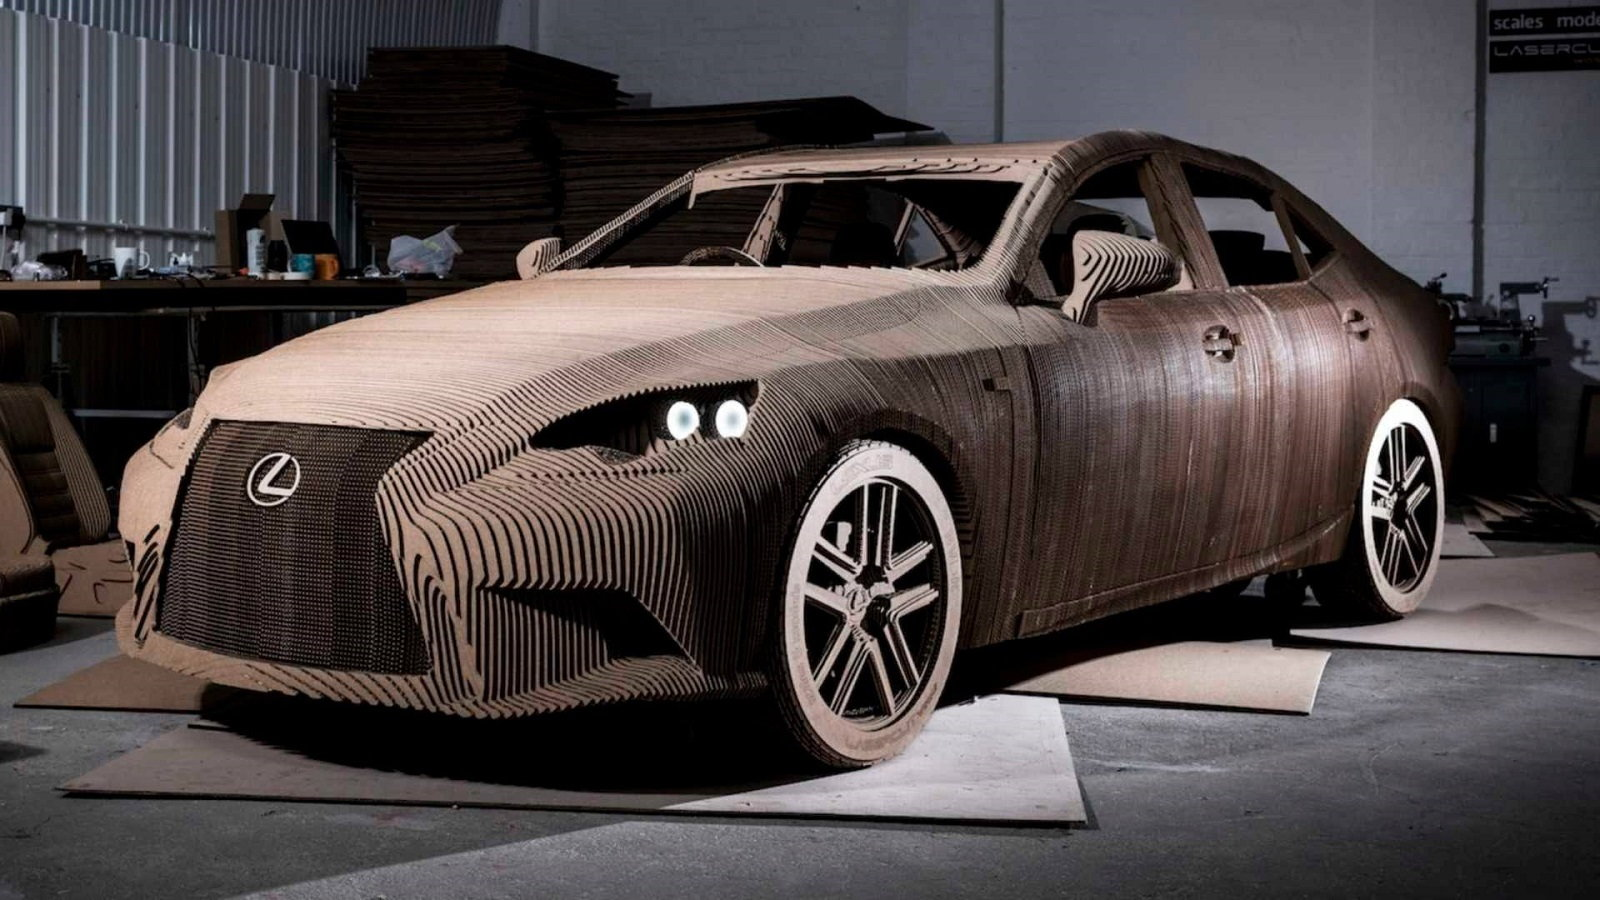 Lexus Builds a Driveable Cardboard Car (Photos) - Clublexus